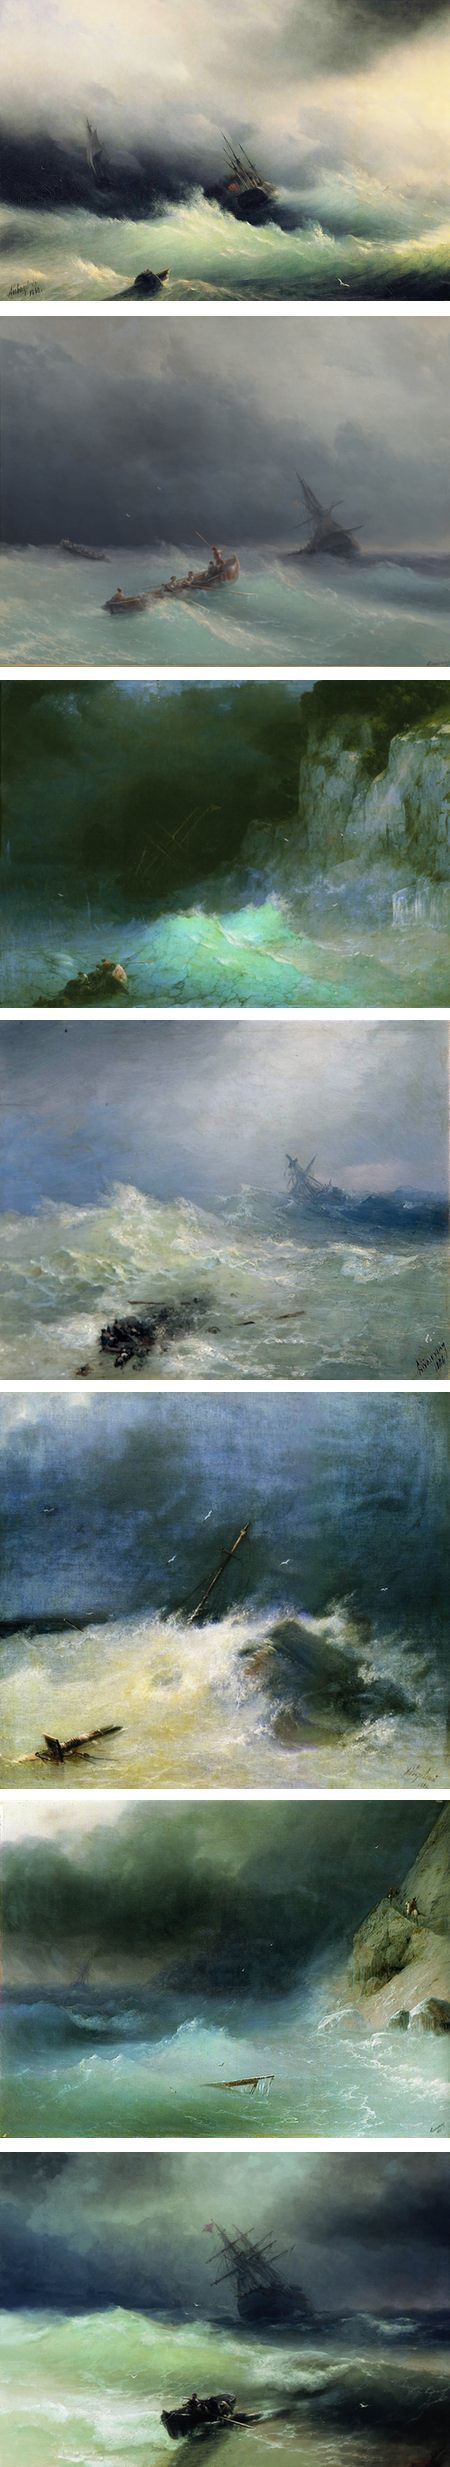 http://www.linesandcolors.com/2011/08/27/the-tempests-of-ivan-aivazovsky/